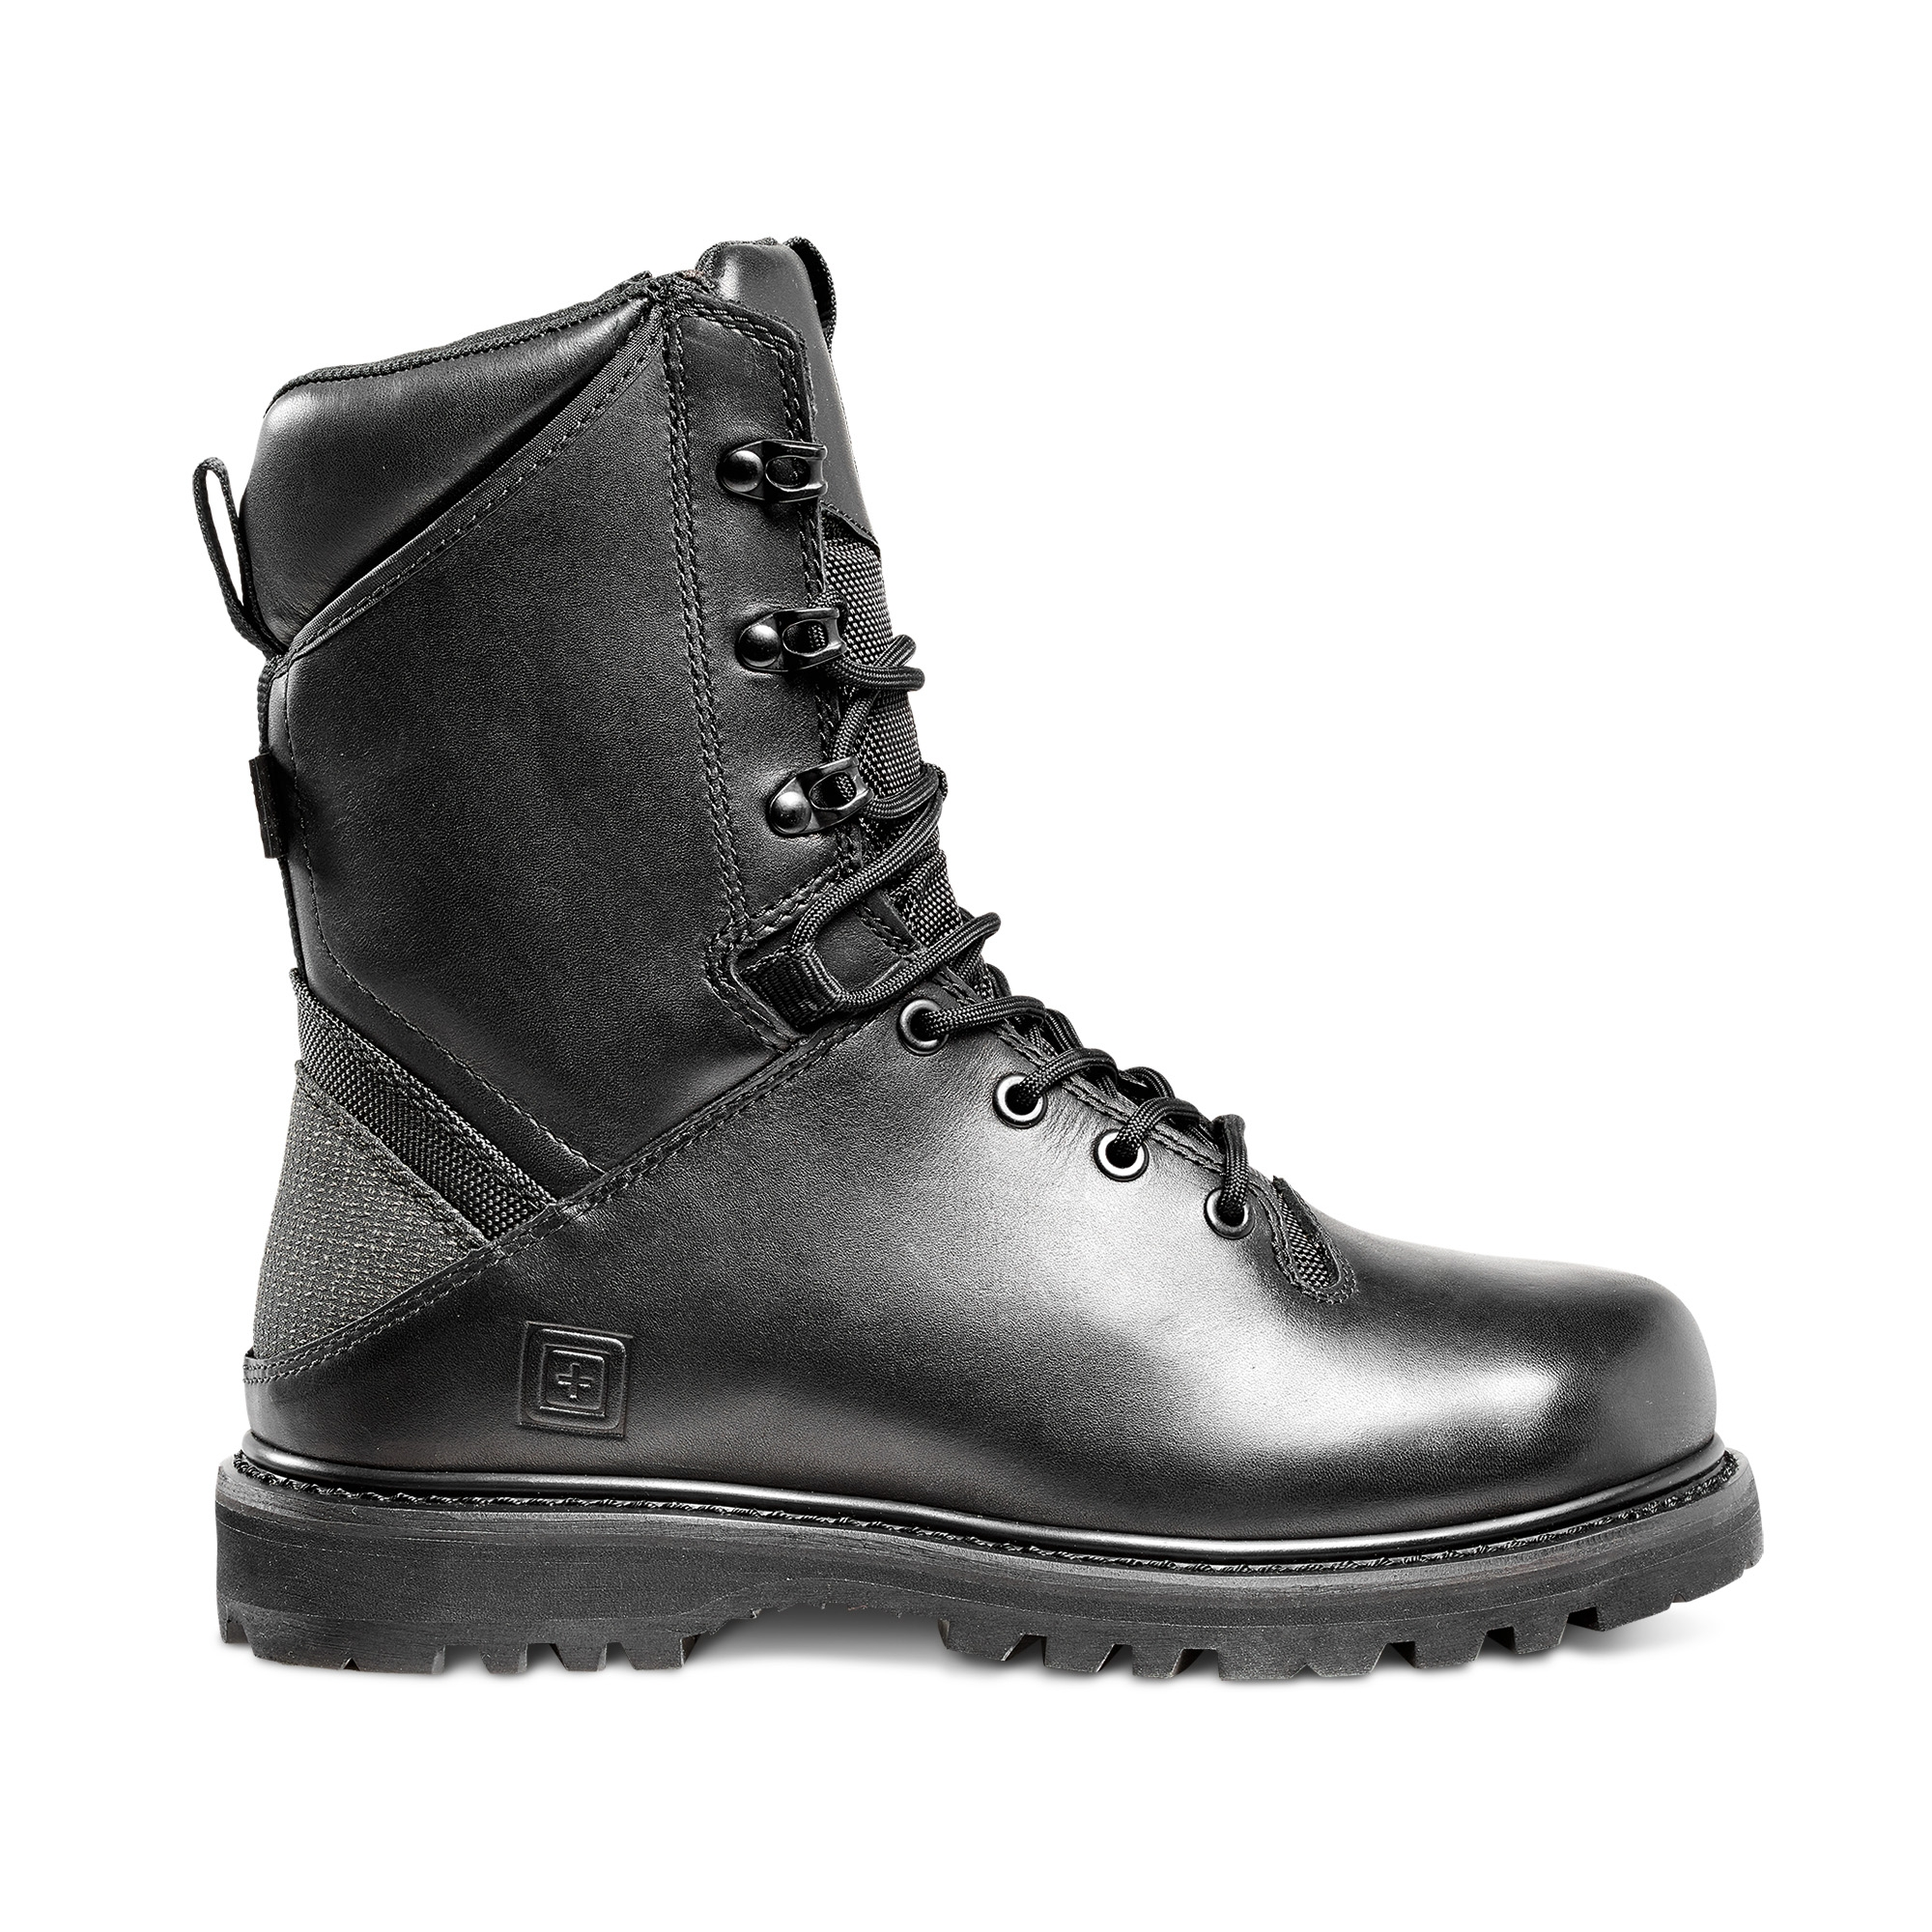 5.11 Tactical Men Apex Waterproof 8 Boot (Black) thumbnail